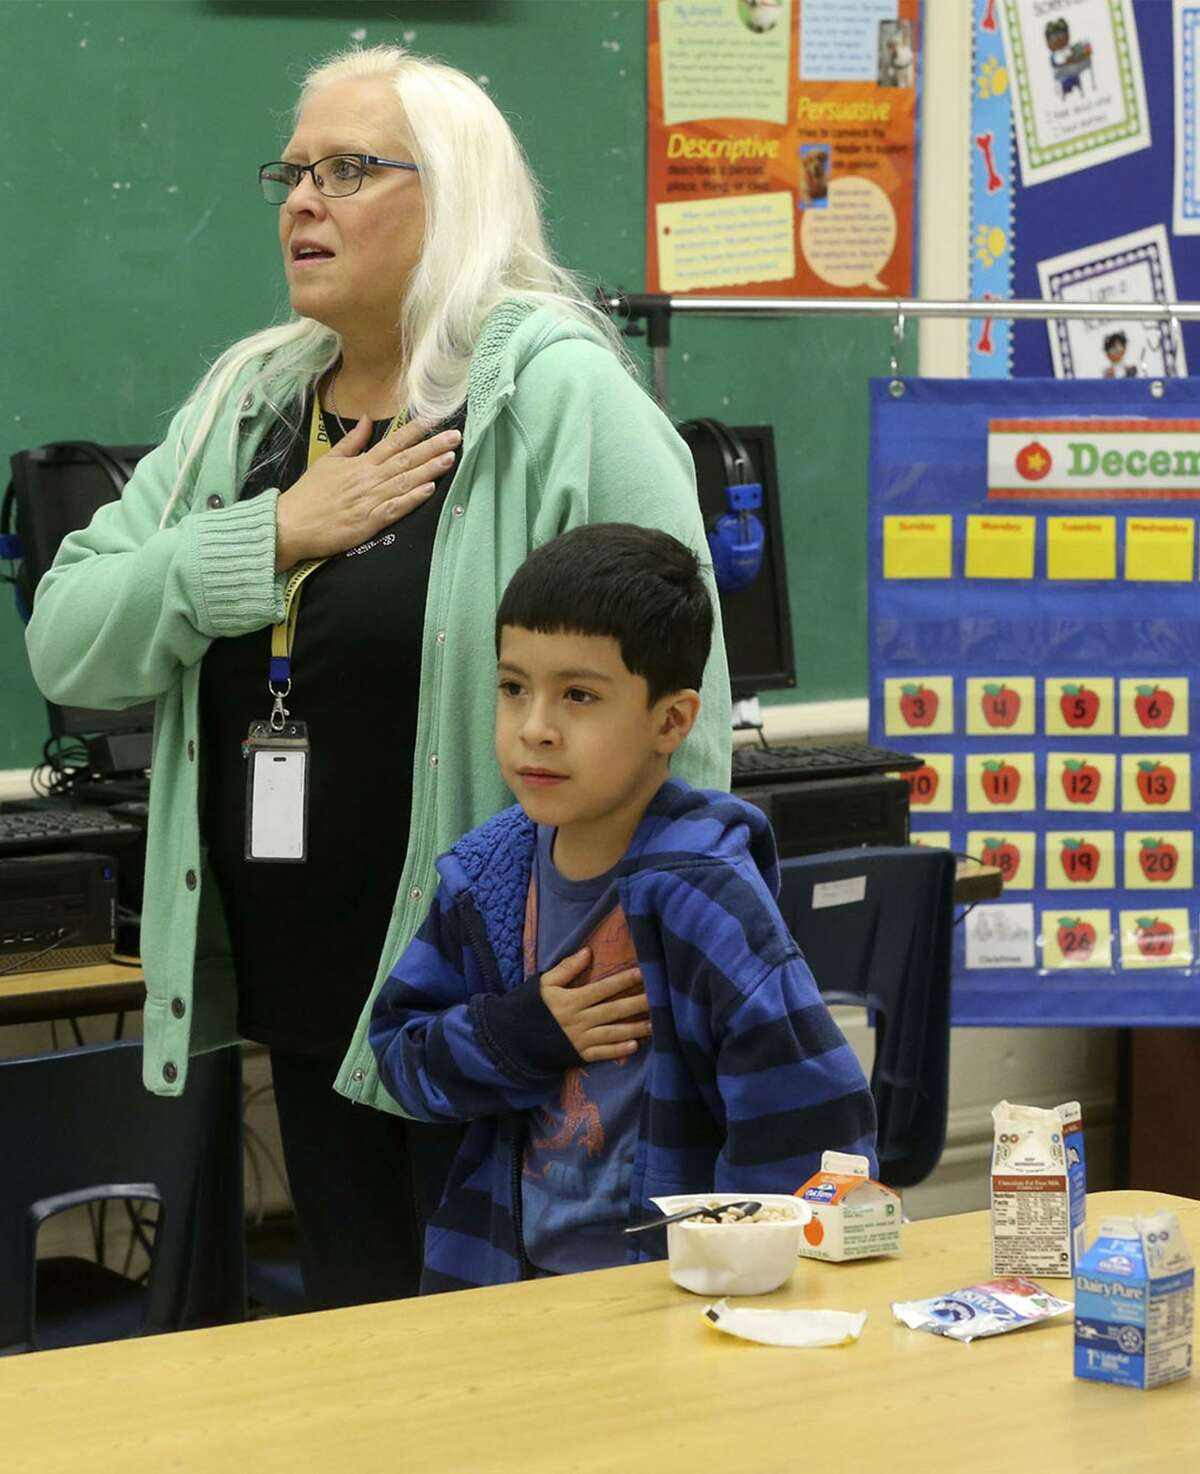 School principal Donna Finch, left, recites the pledge of allegiance during breakfast Dec. 20, 2017 in a second grade classroom at De Zavala Elementary school on San Antonio's West Side. Do students have the right to not stand and not pledge? A reader says yes.